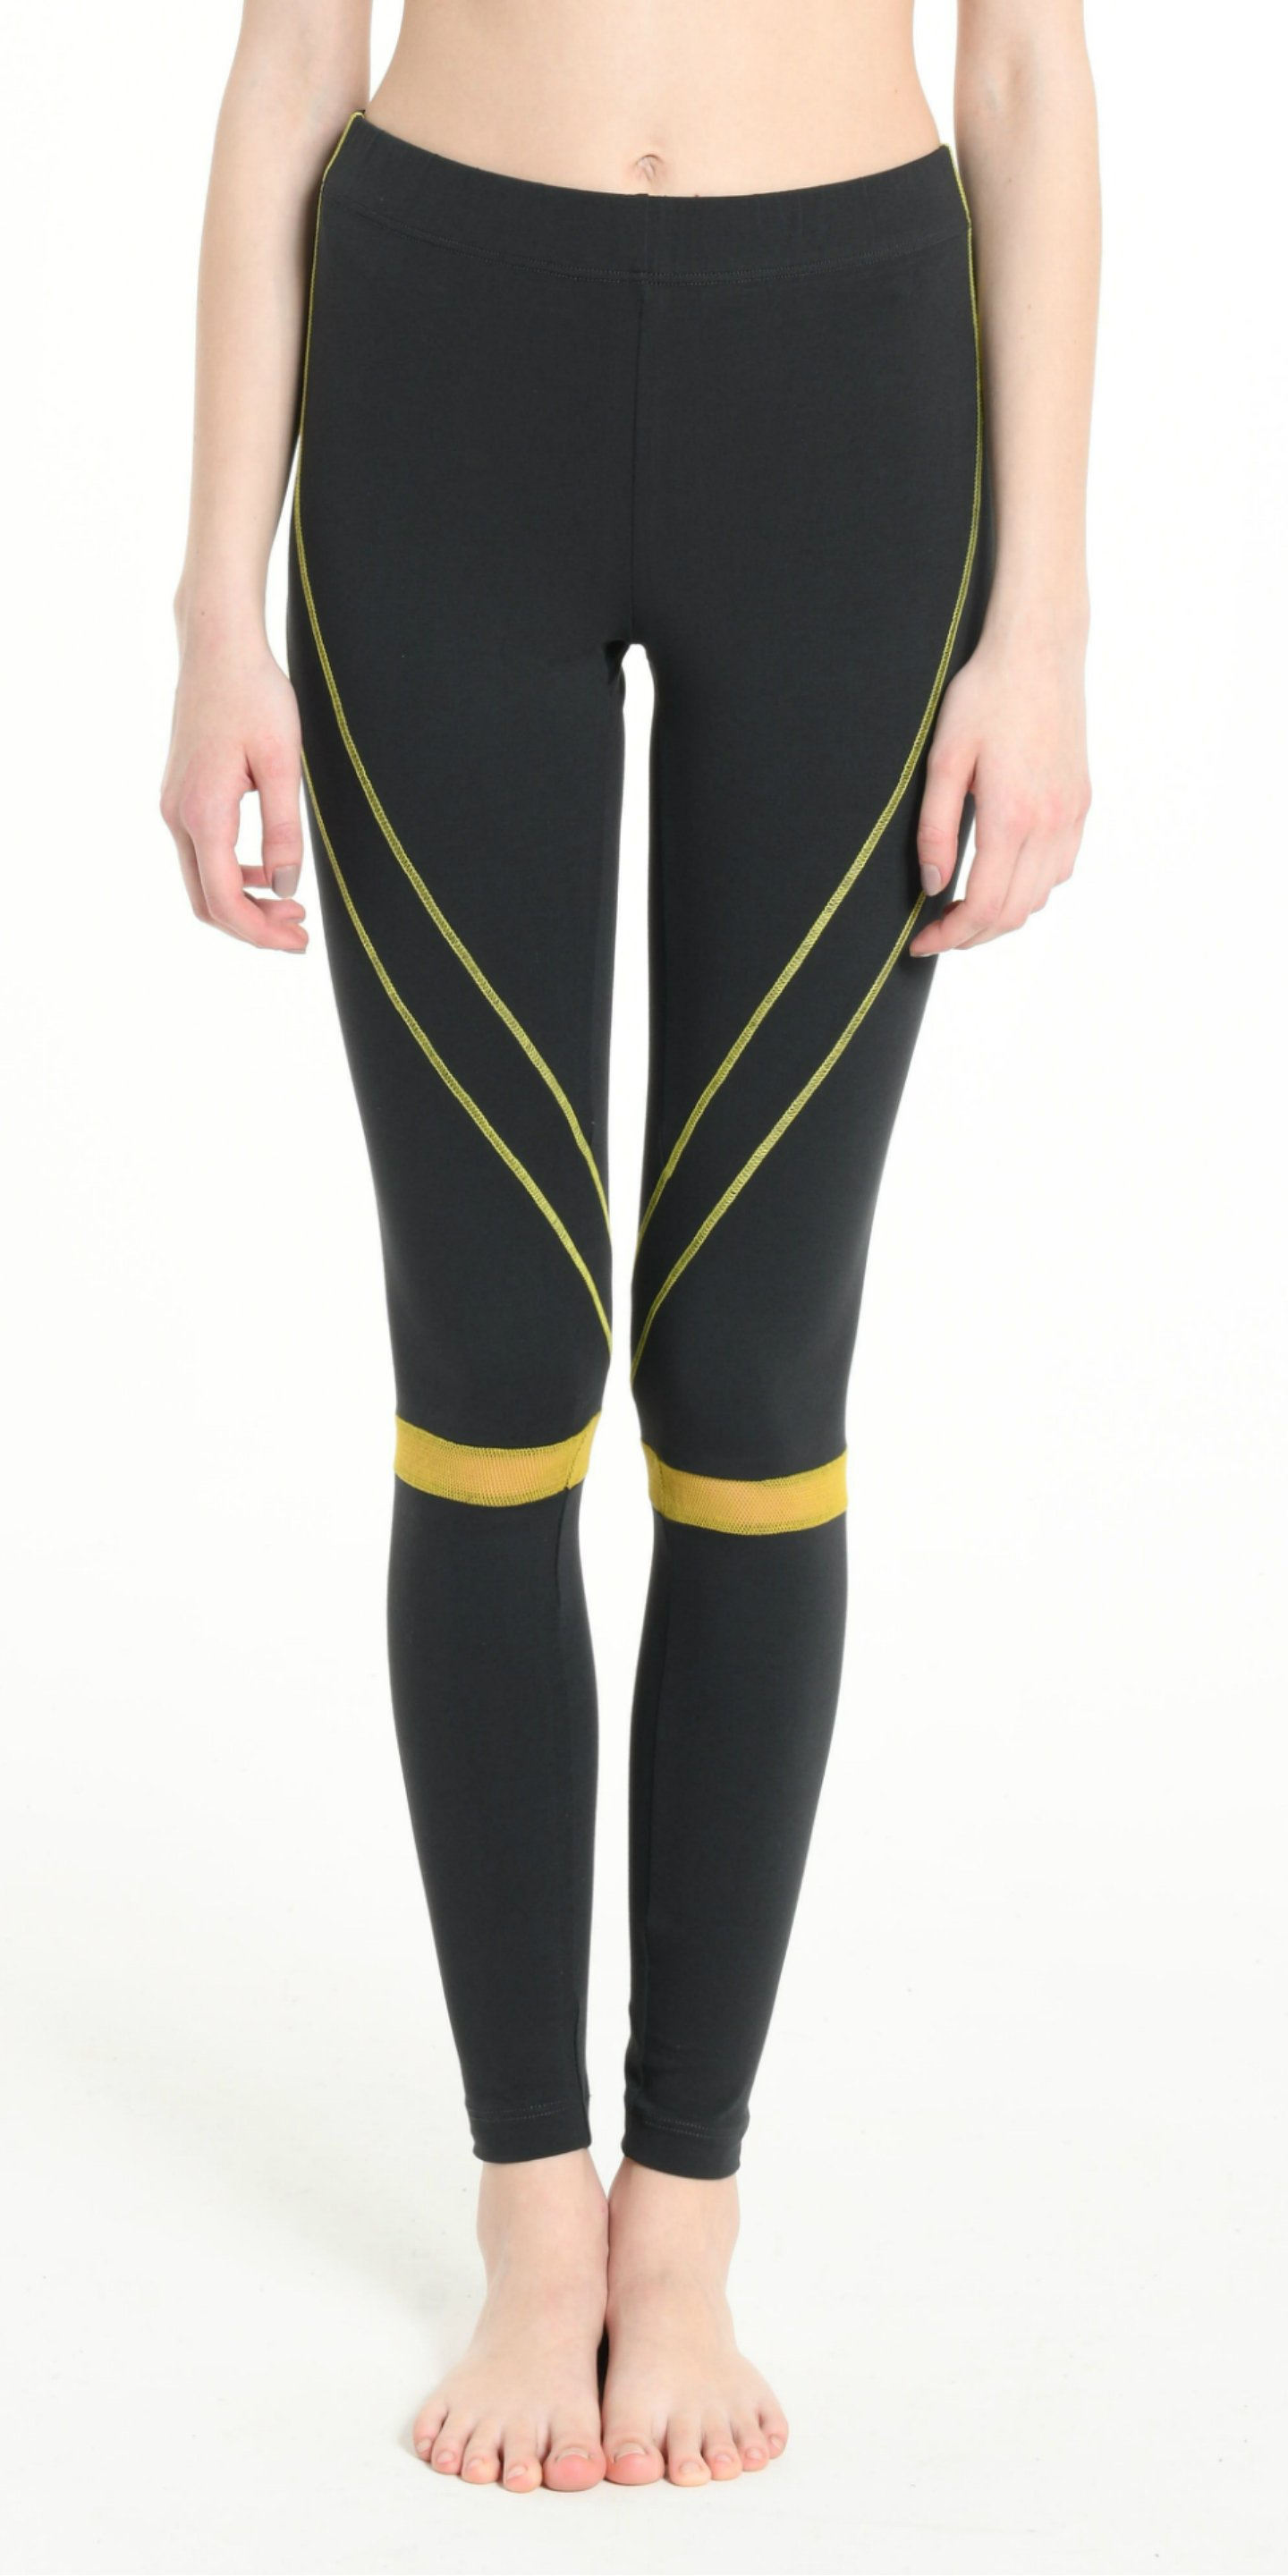 LEGGINGS DARK GREY  WITH YELLOW STRIPS from BEARD & FRINGE